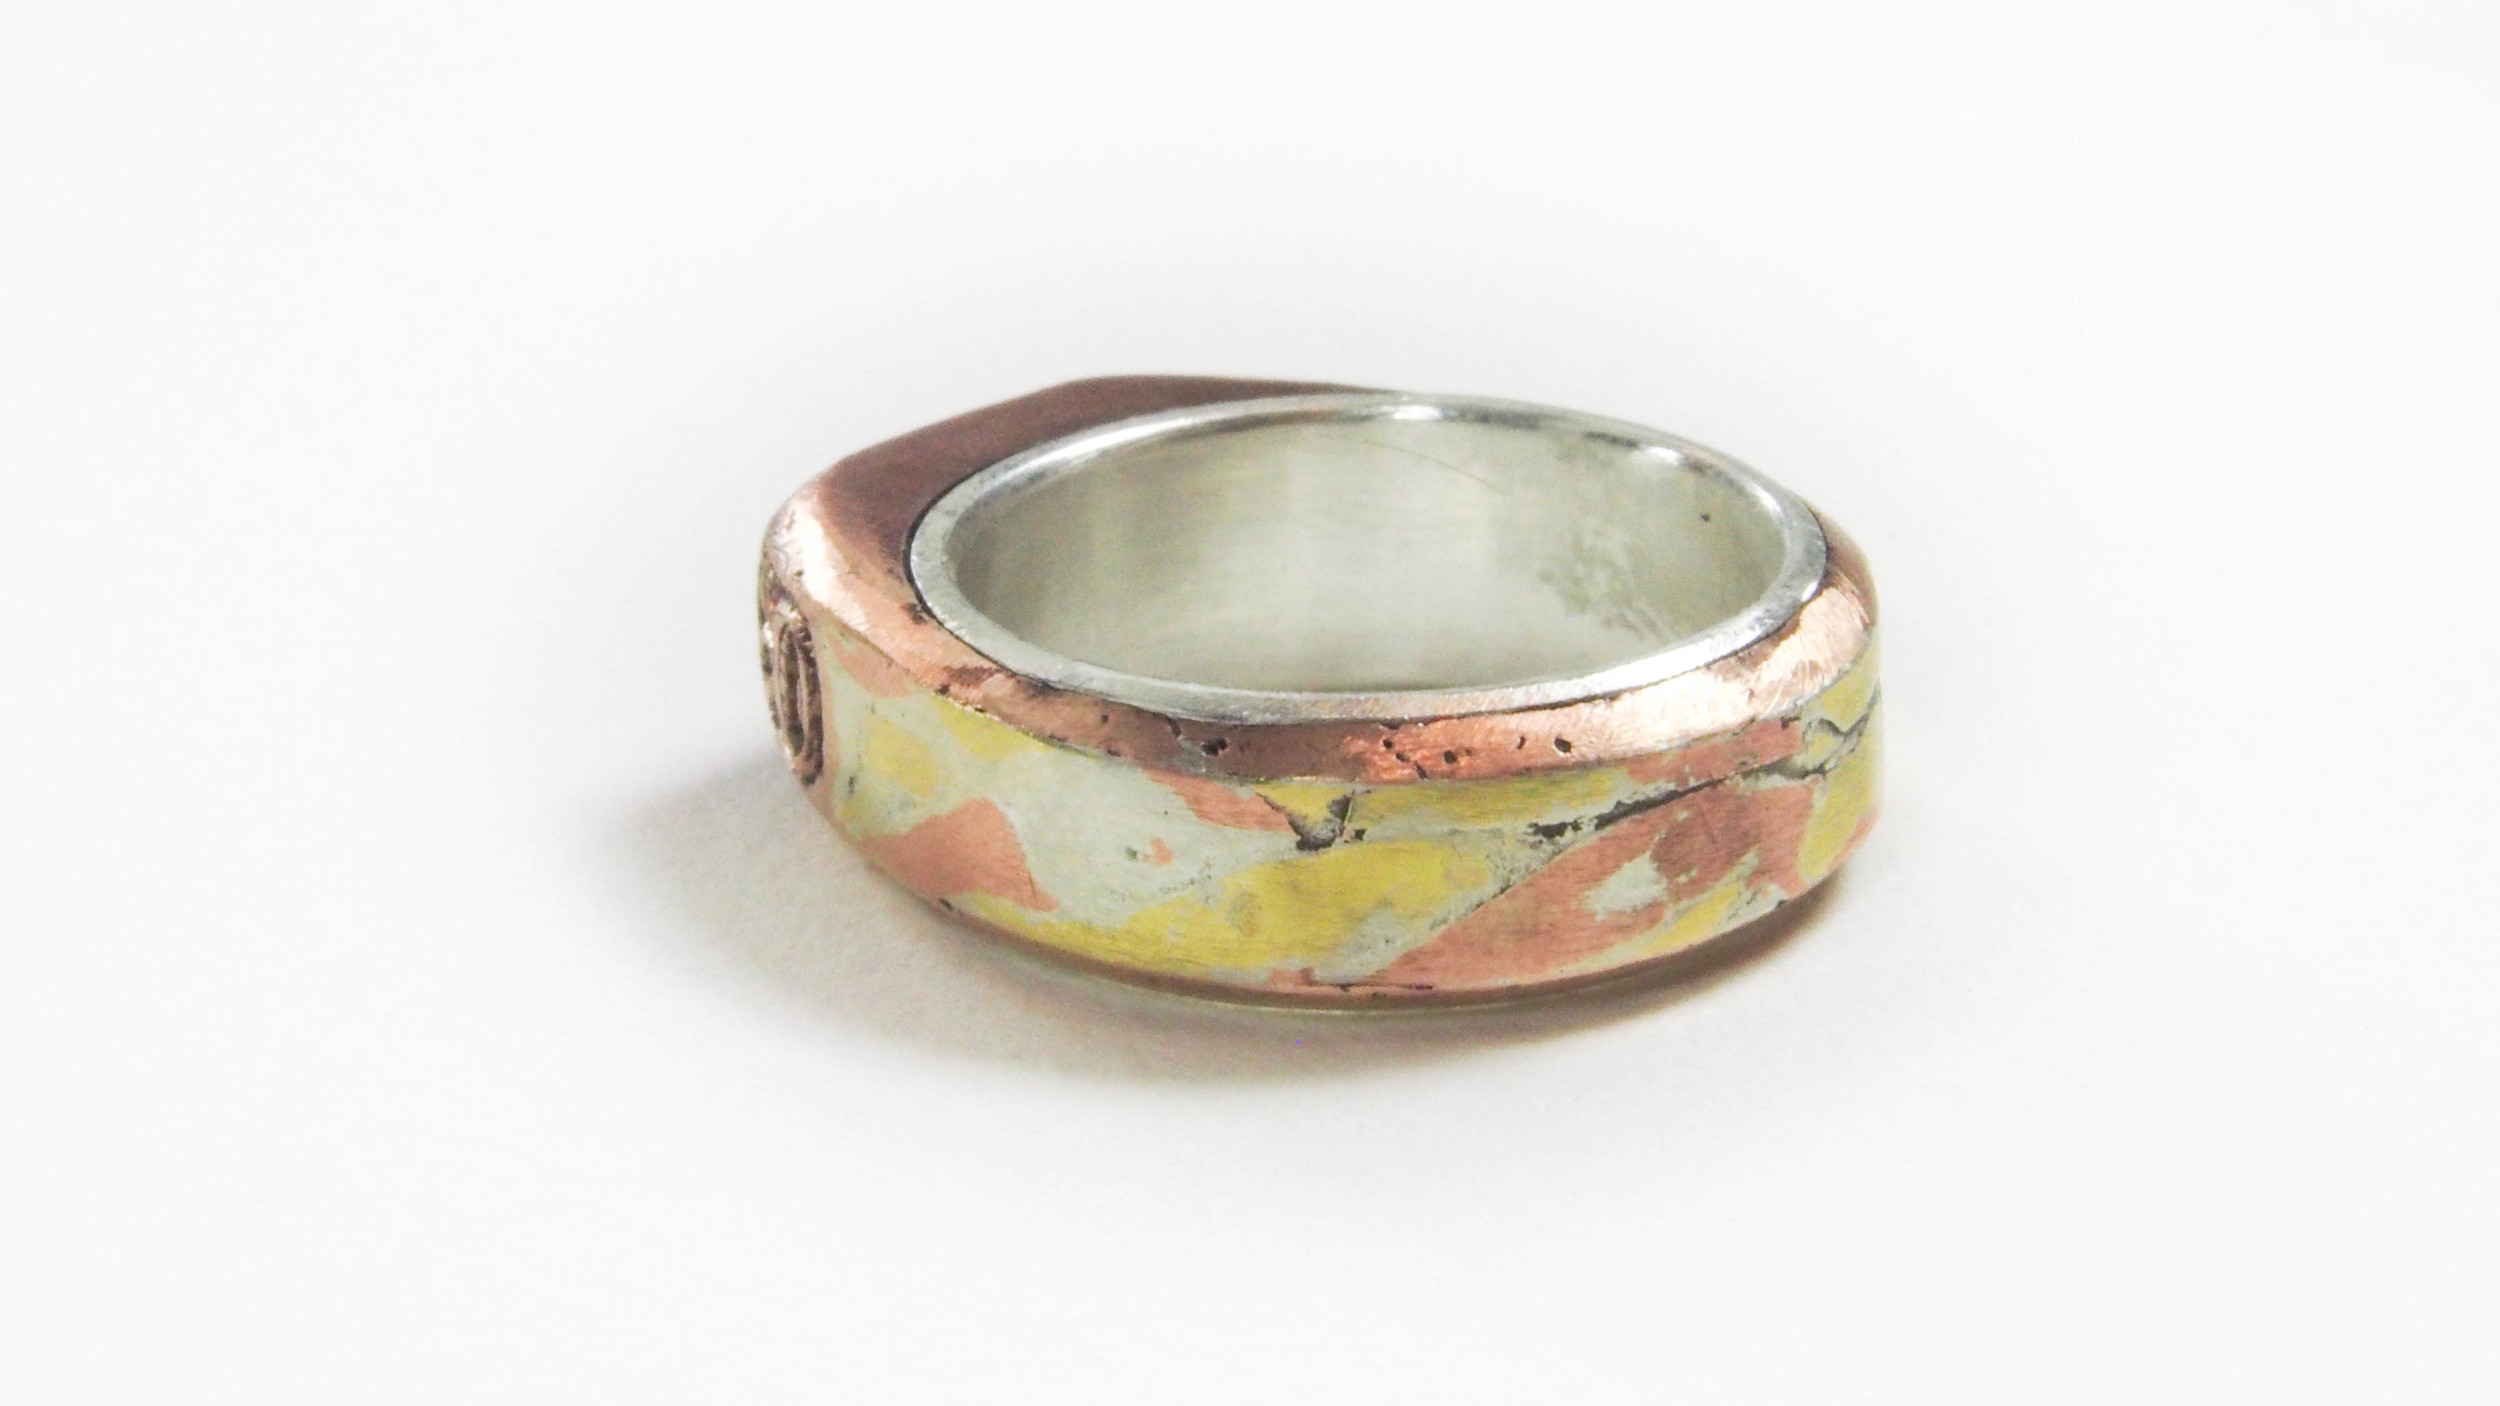 A Ring for Dane